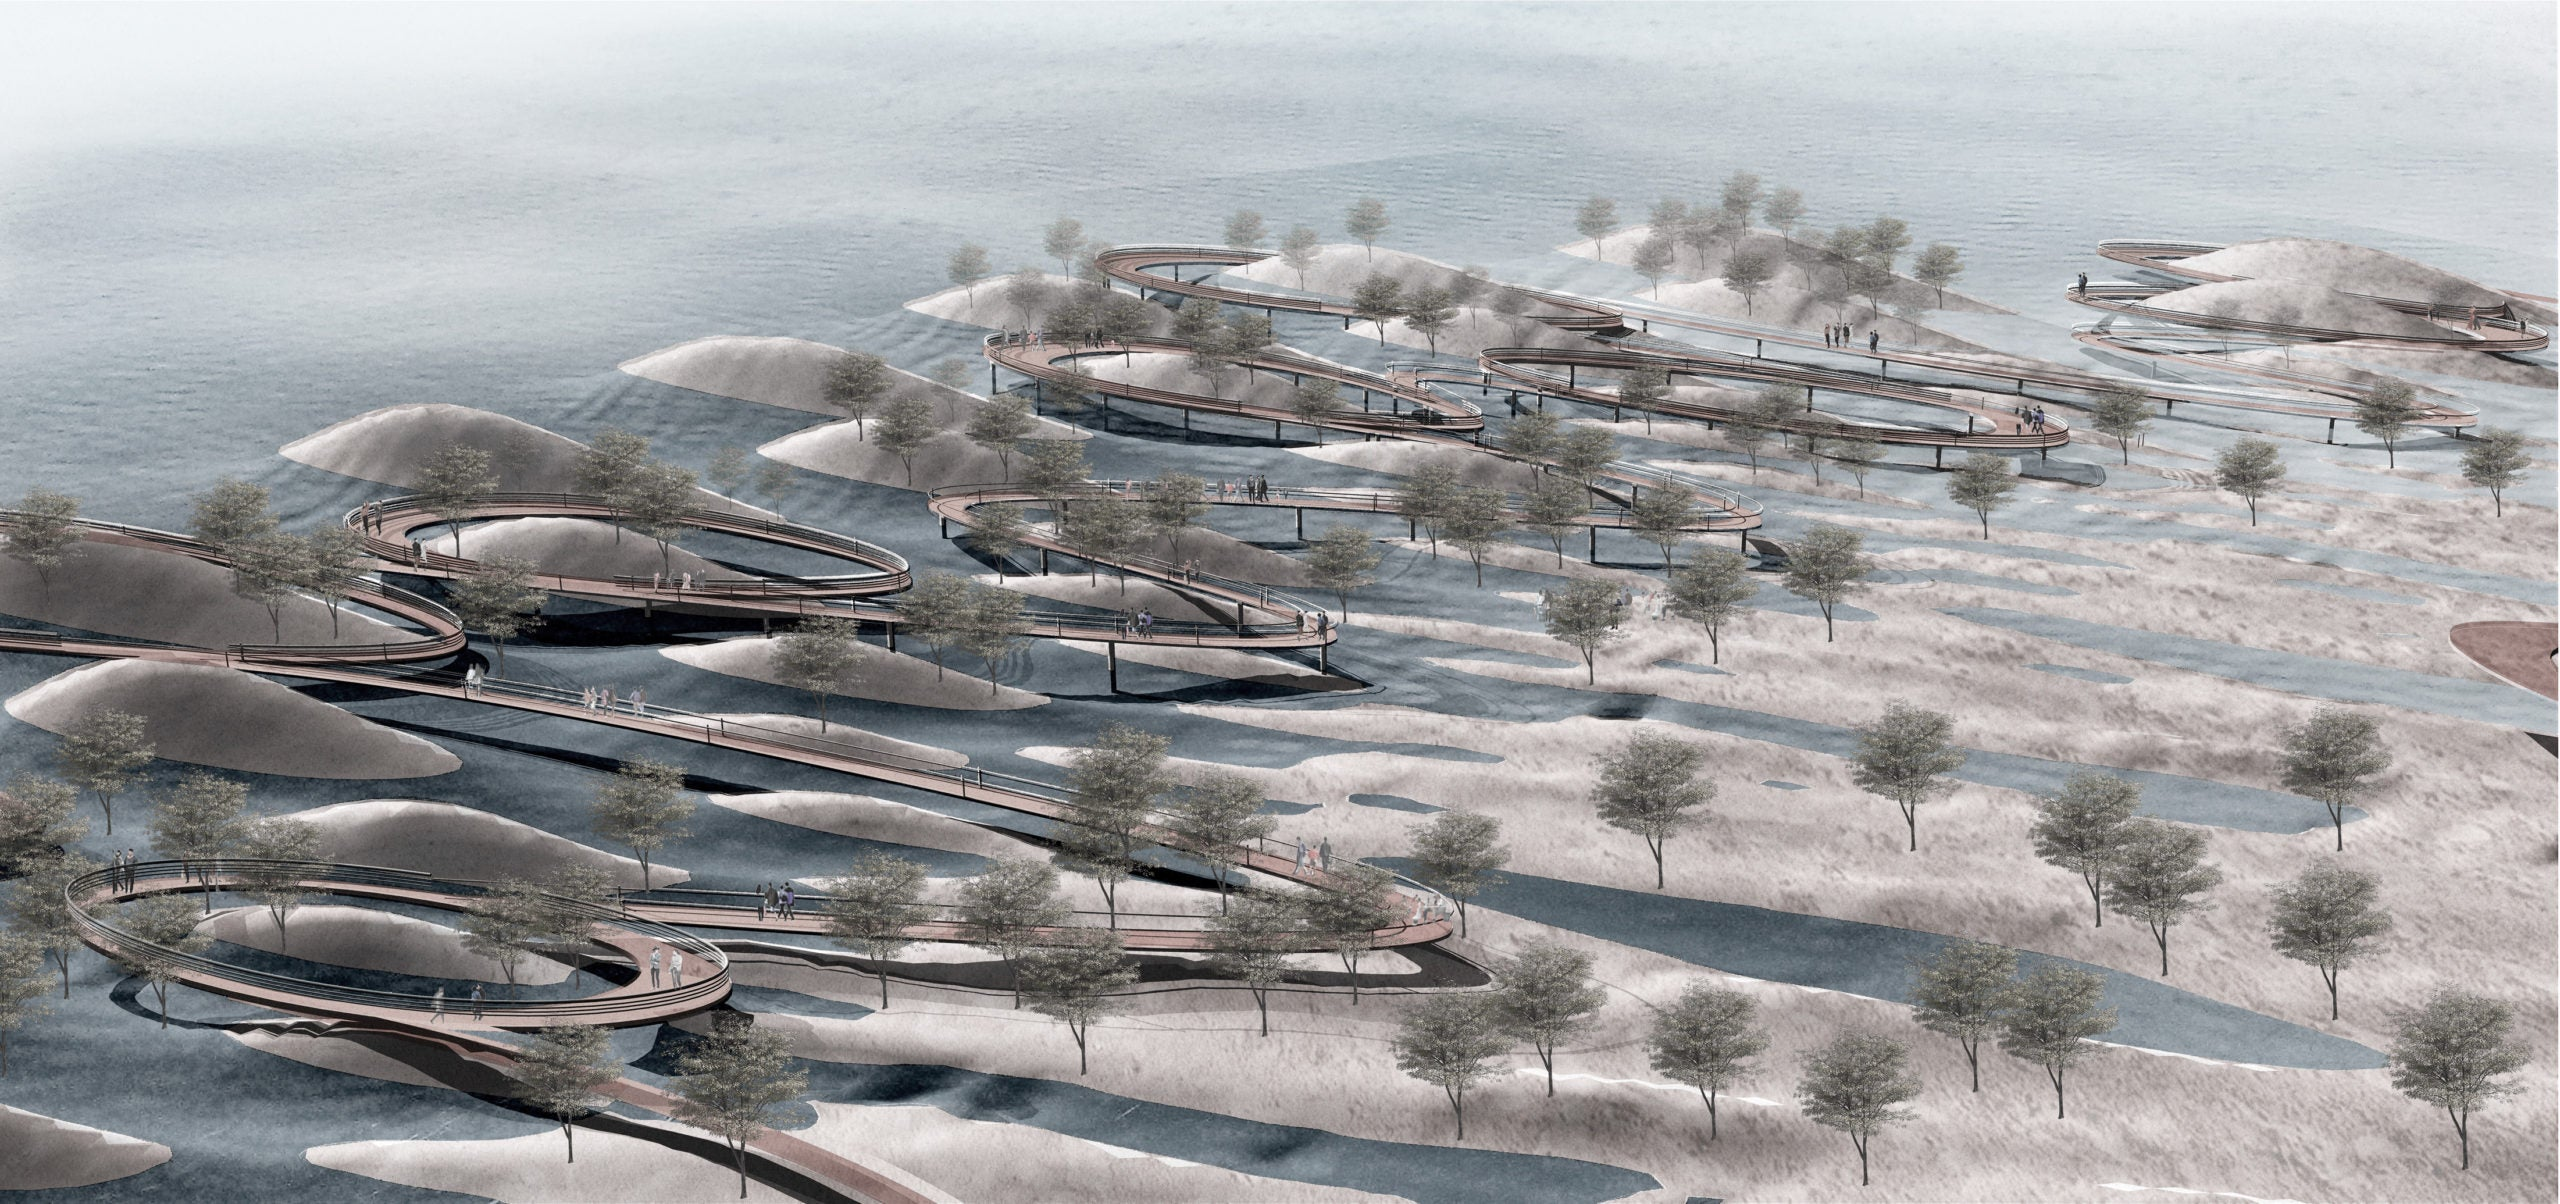 a mock up of what a Miami community could look like when adapted to climate change. Kind of looks like a bunch of octopus legs going into the ocean.